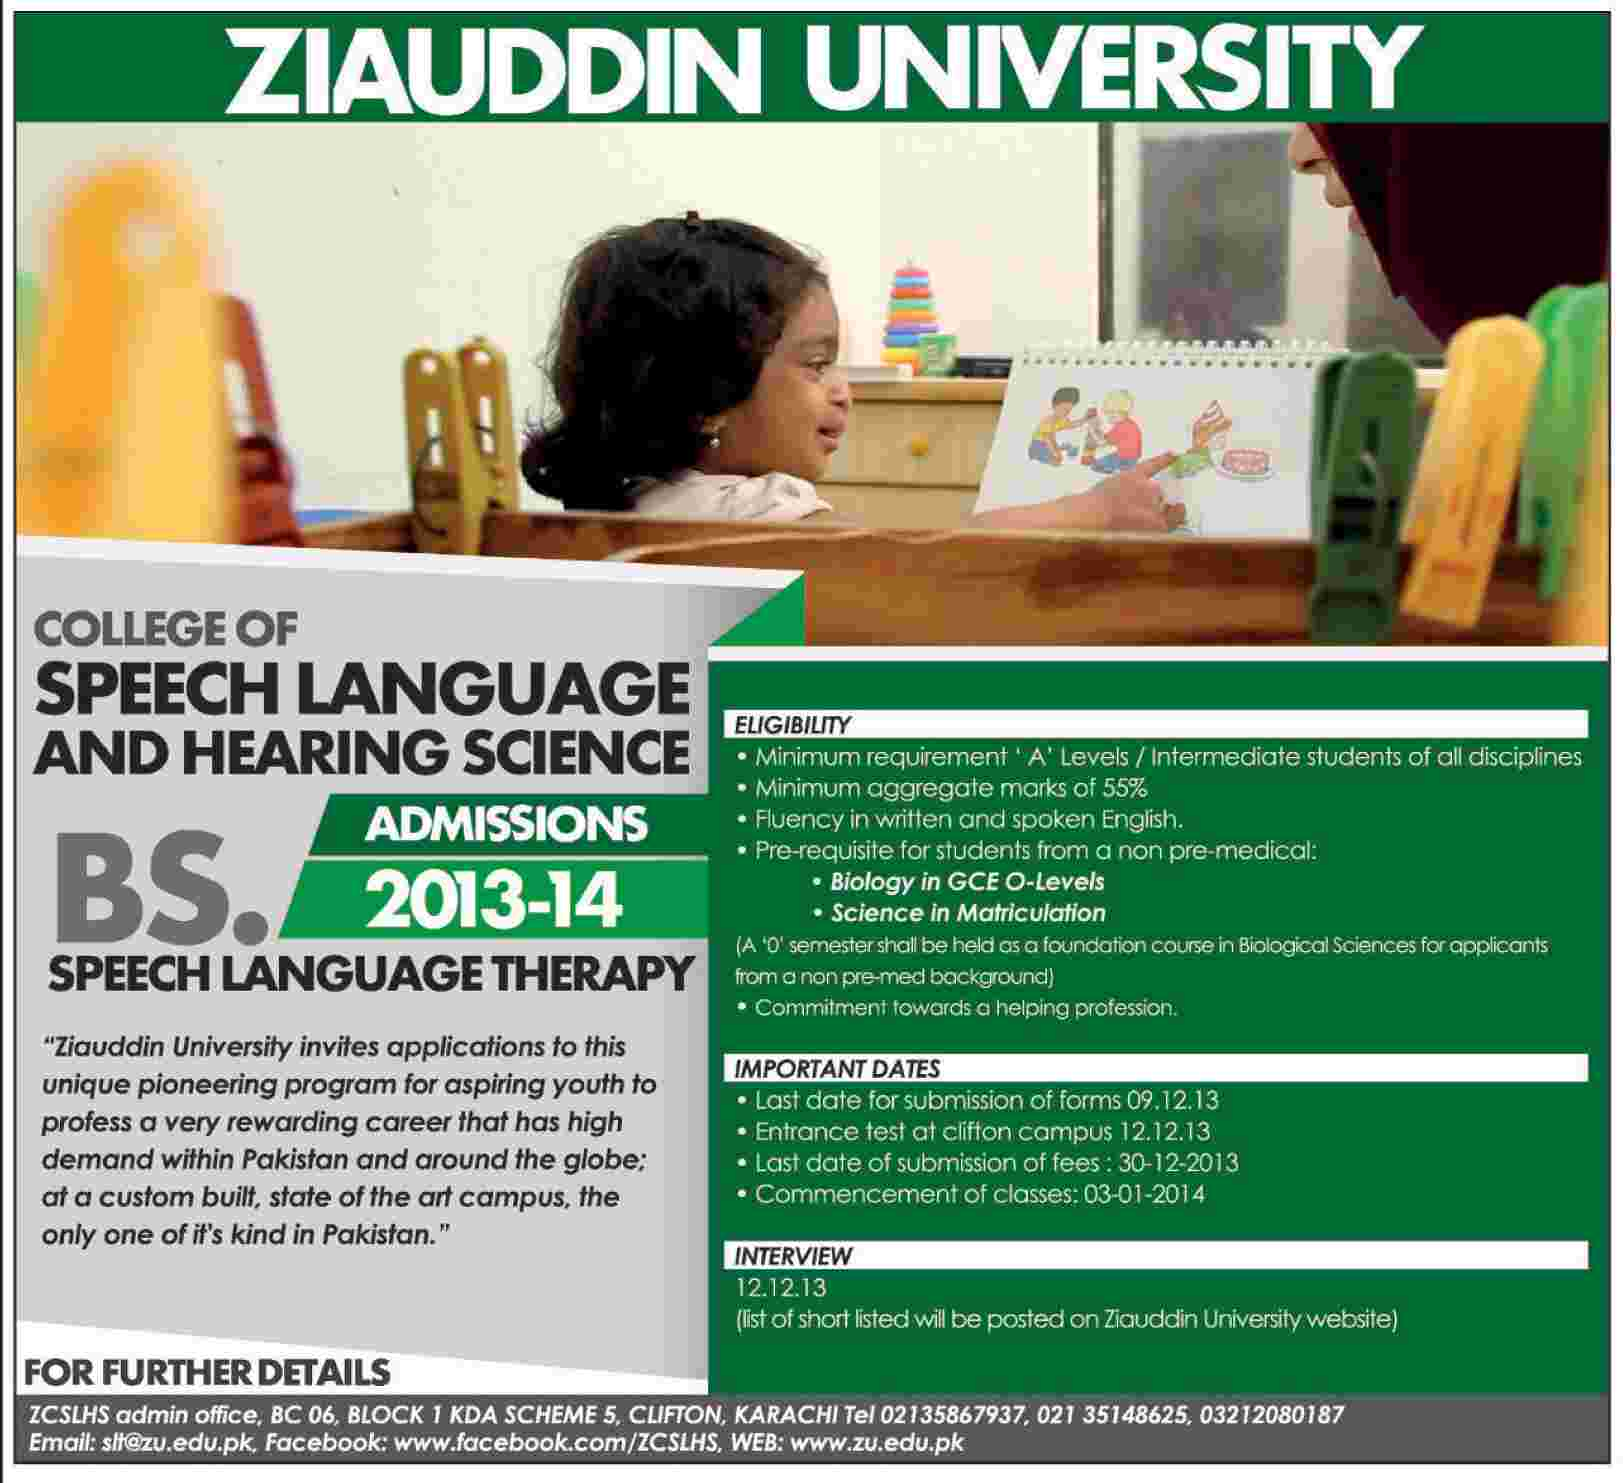 Karachi: College of Speech Language & Hearing Science , Ziauddin University (ZU) Karachi Admission Notice 2013 for BS in Speech Language Therapy (SLT)